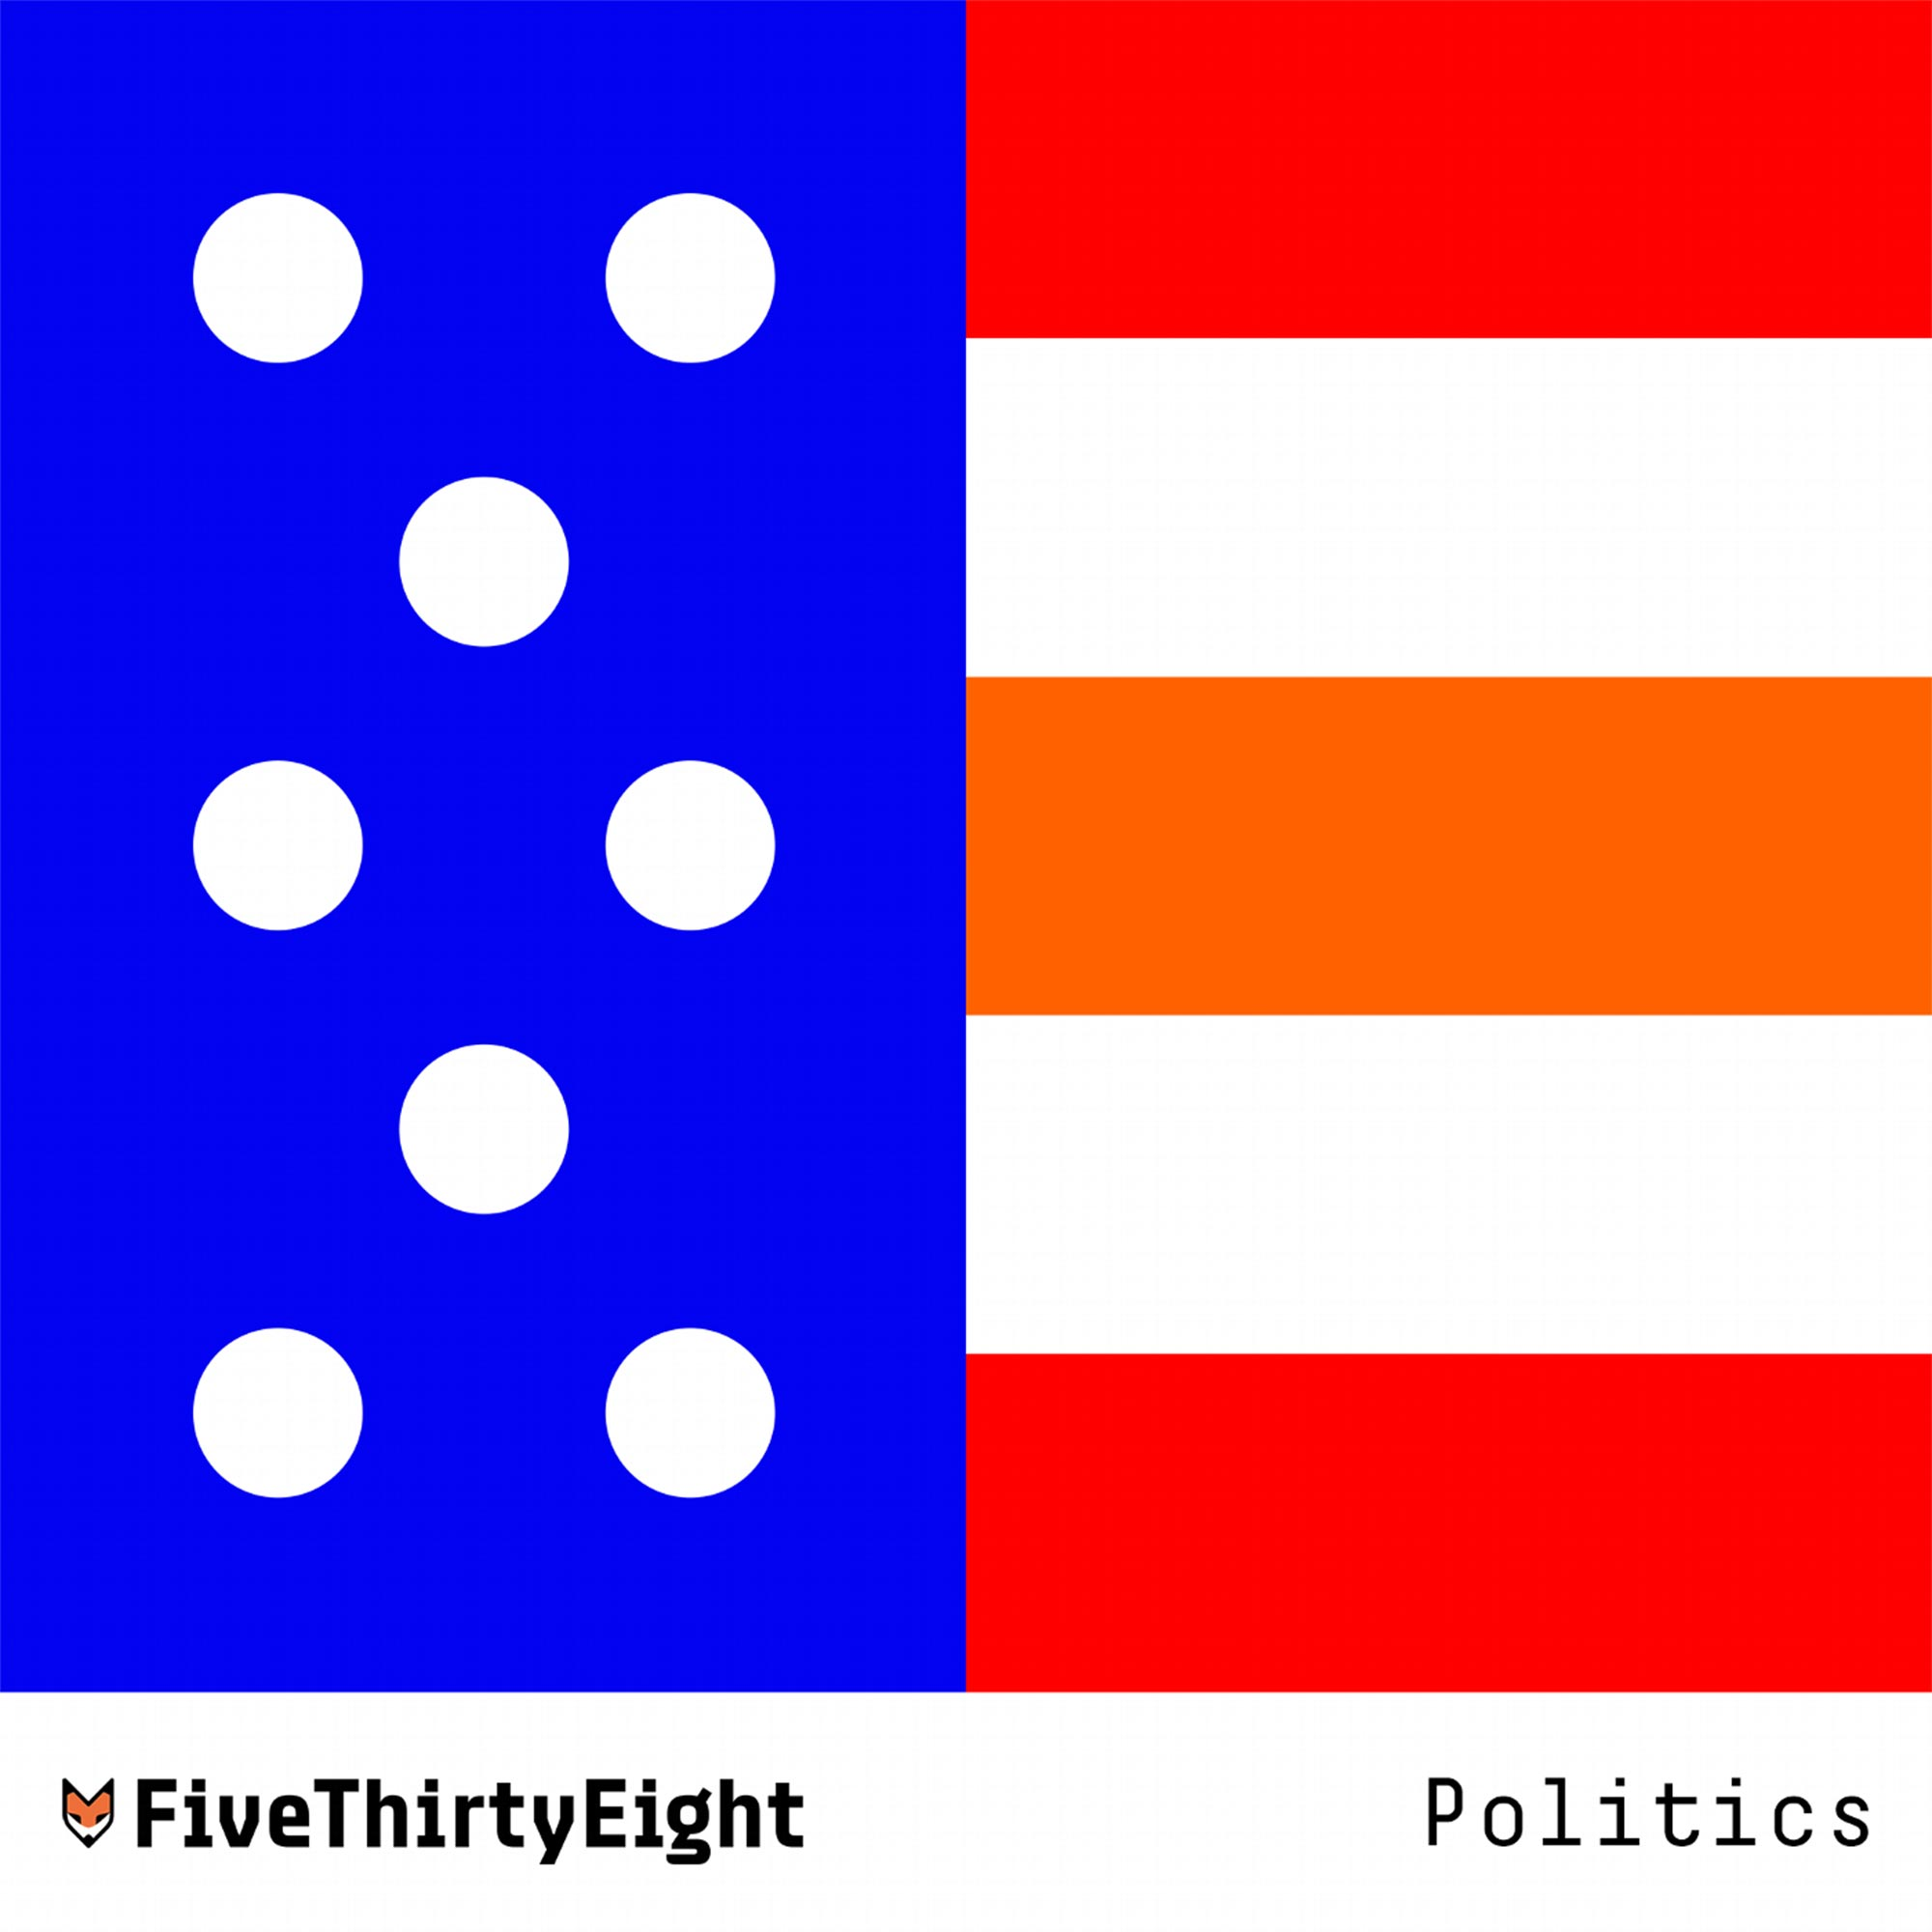 7. FiveThirtyEight Politics